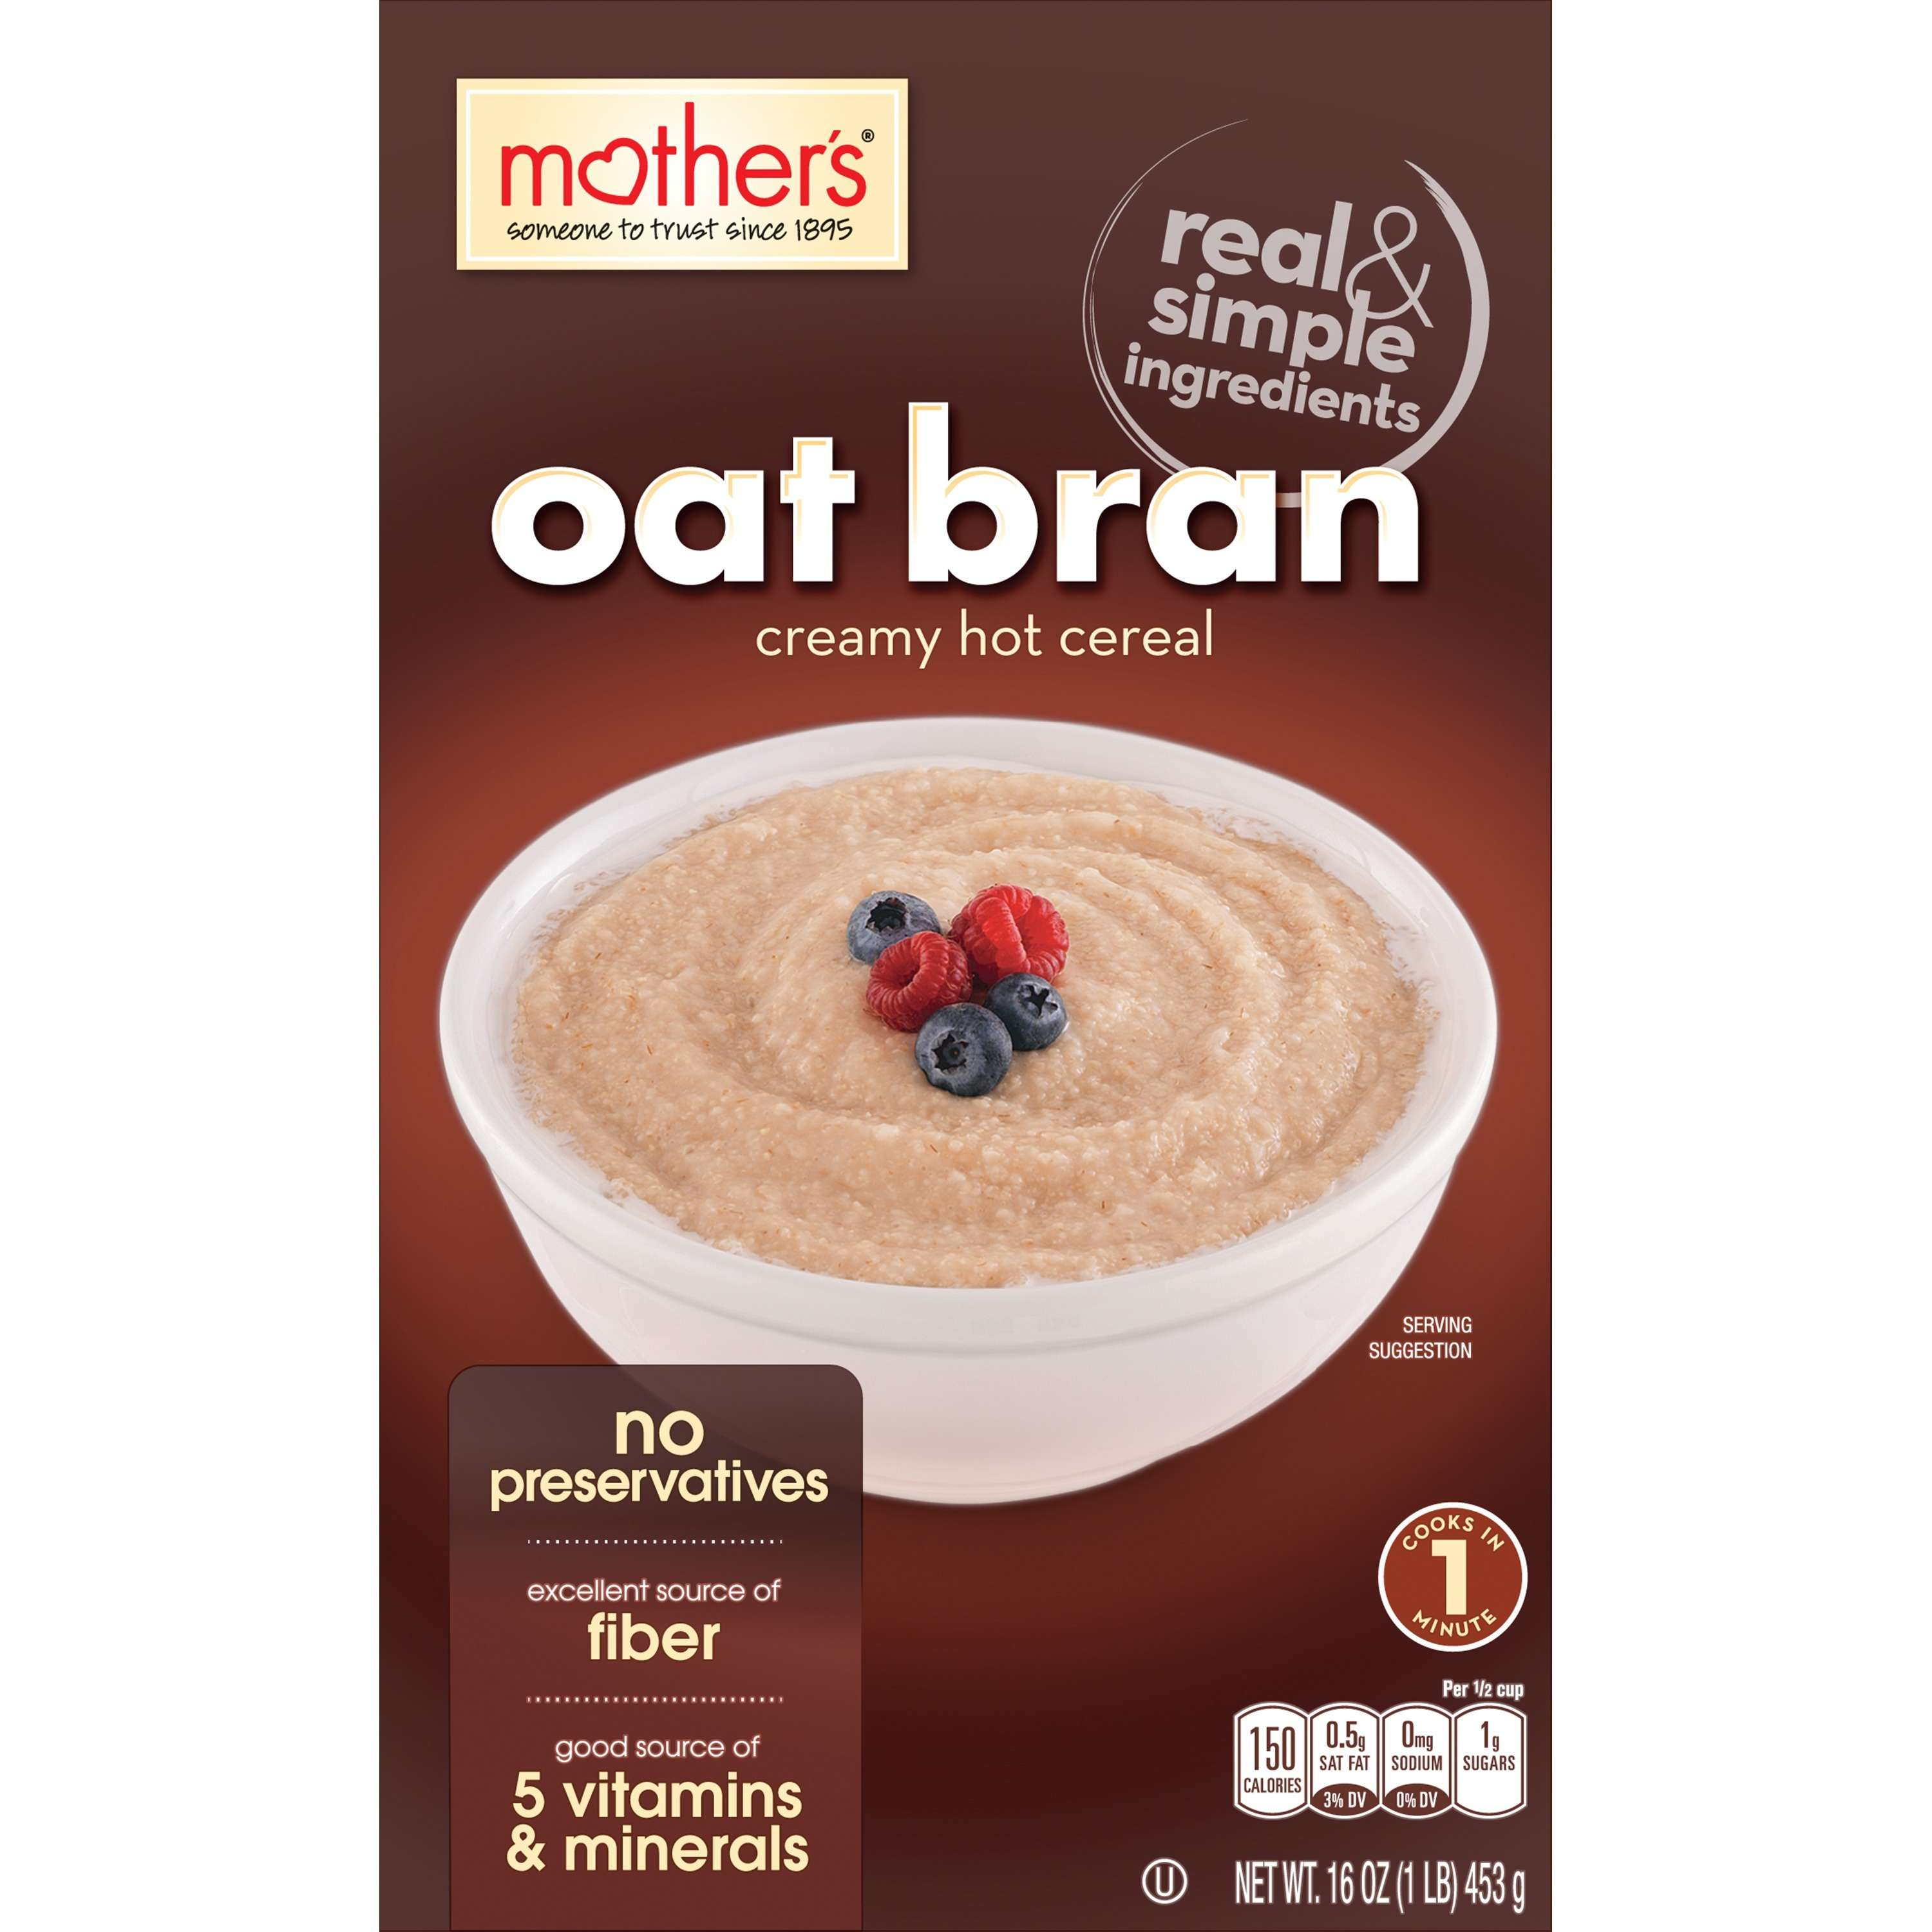 Mother's Oat Bran Creamy Hot Cereal, 16 Oz